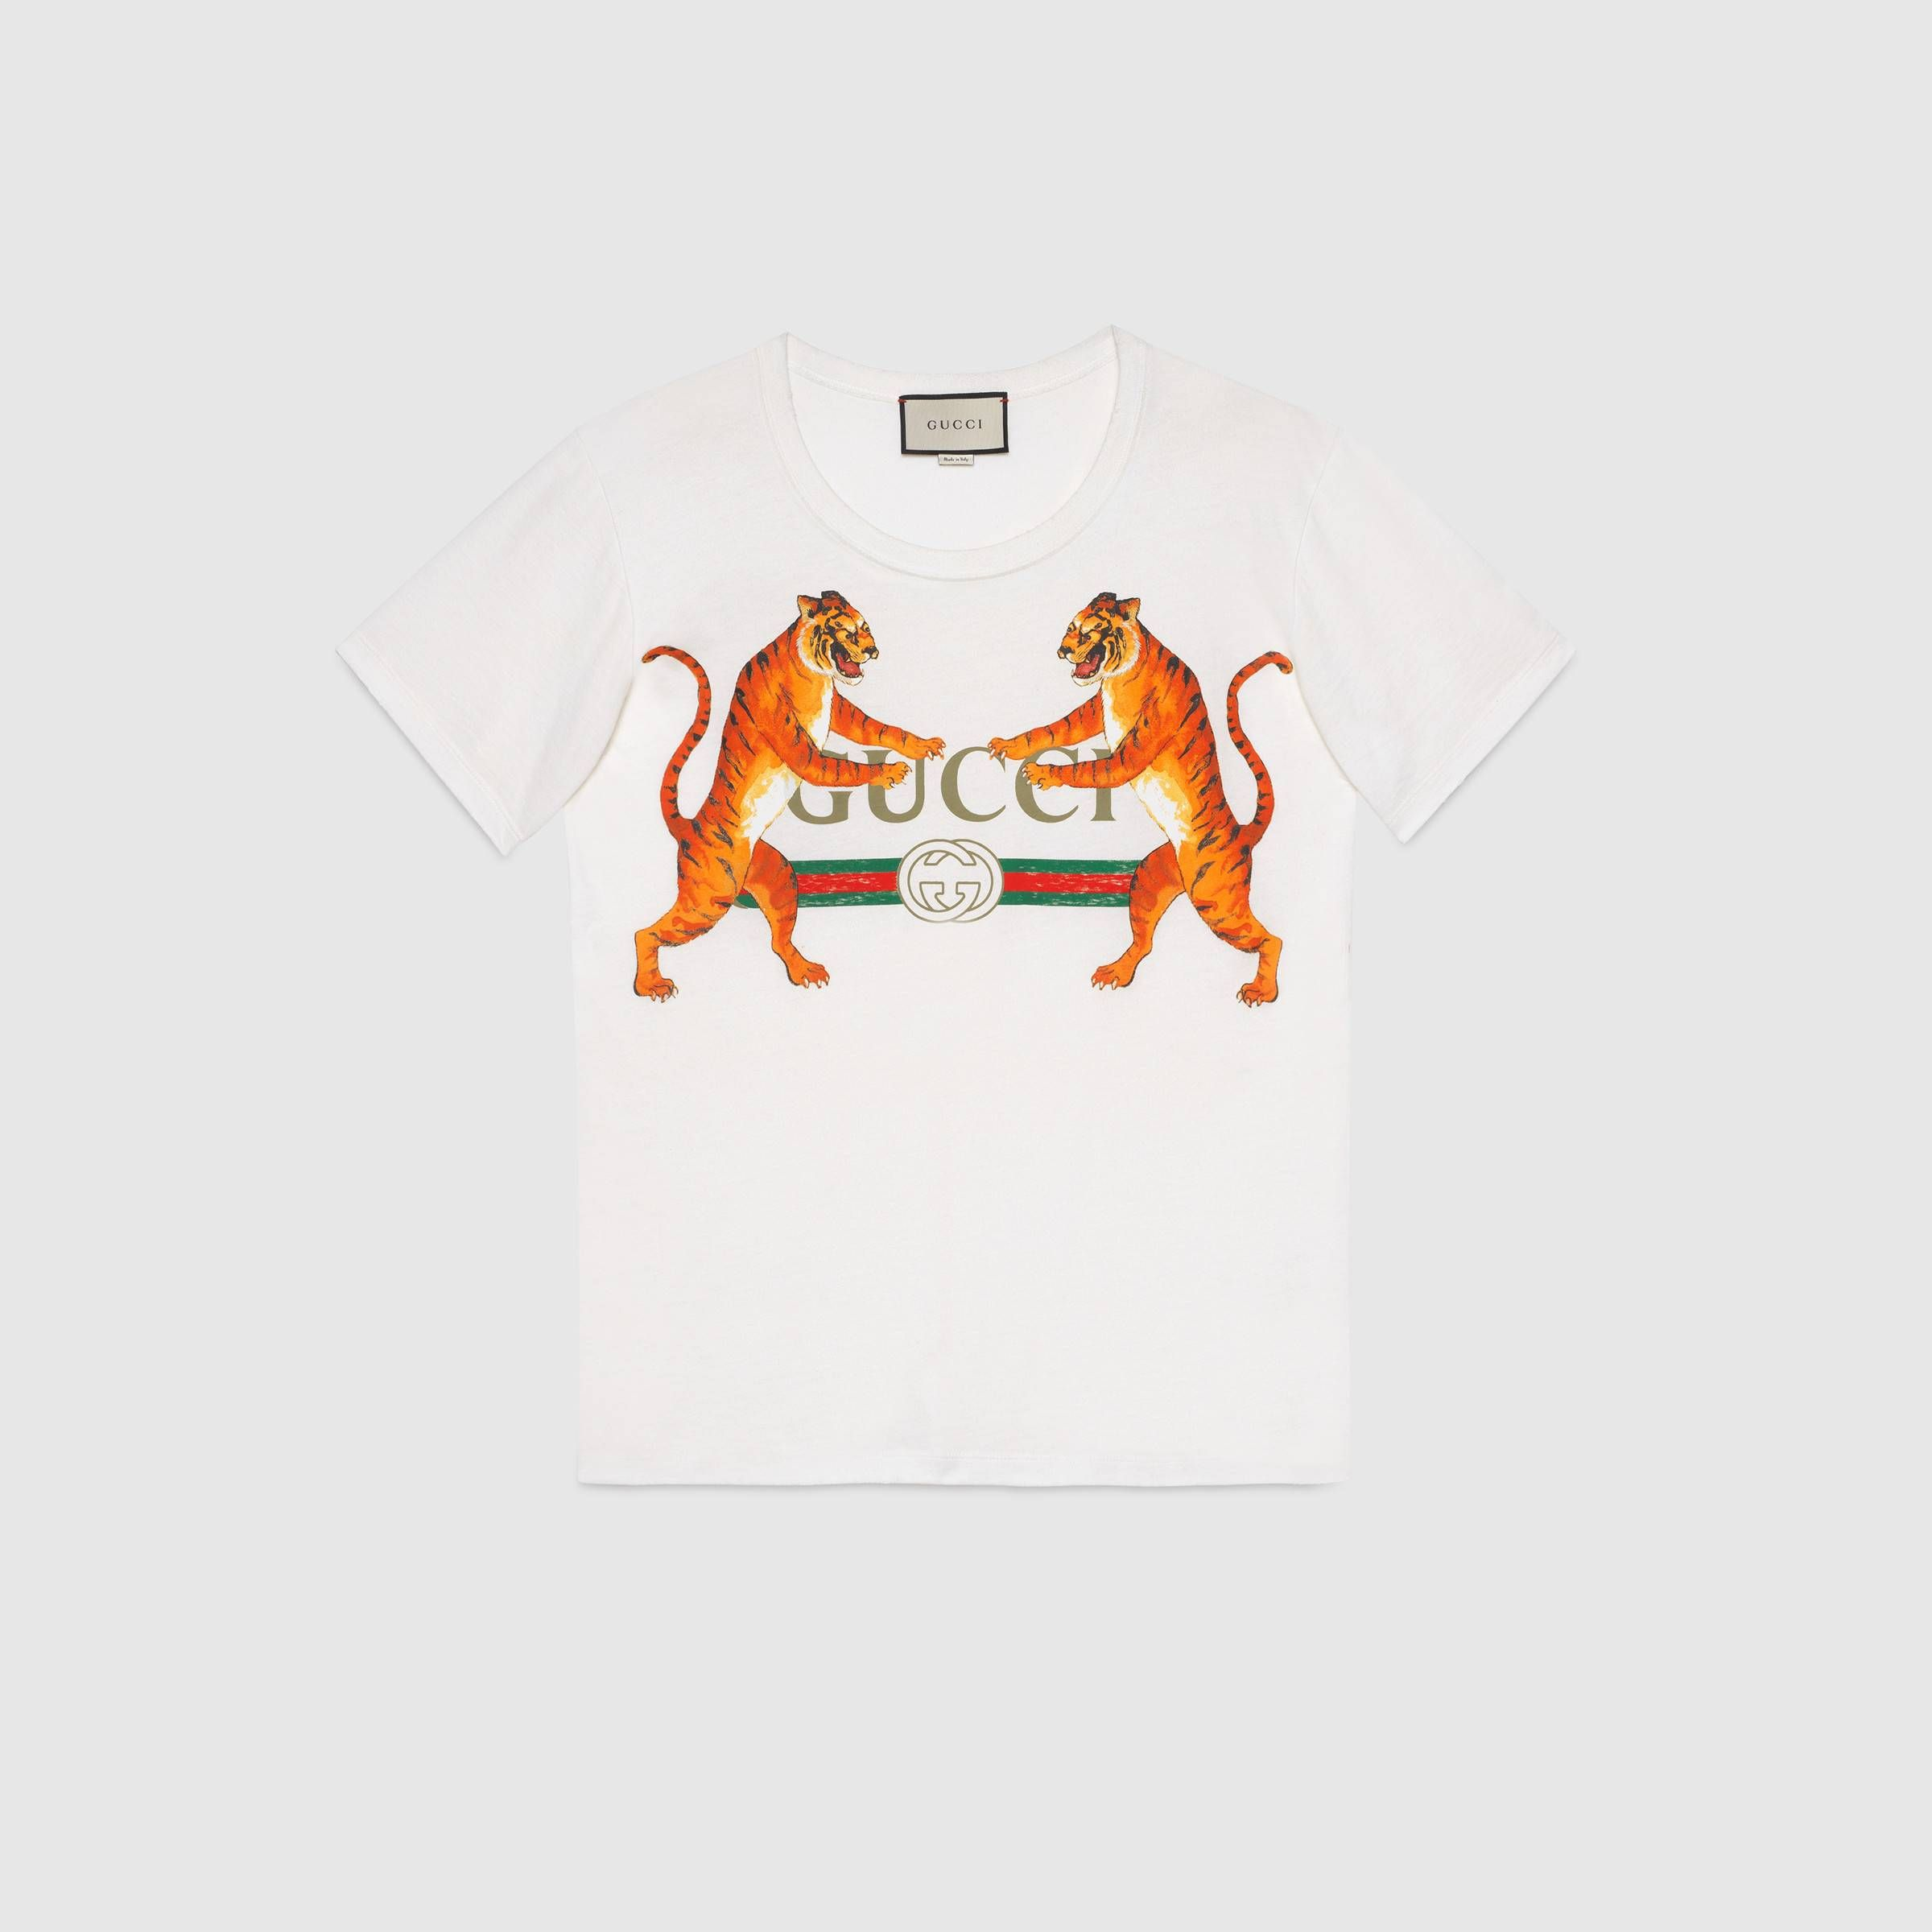 b65801416 Gucci logo with tigers T-shirt - Gucci Women's Sweatshirts & T-shirts  492347X3L169101